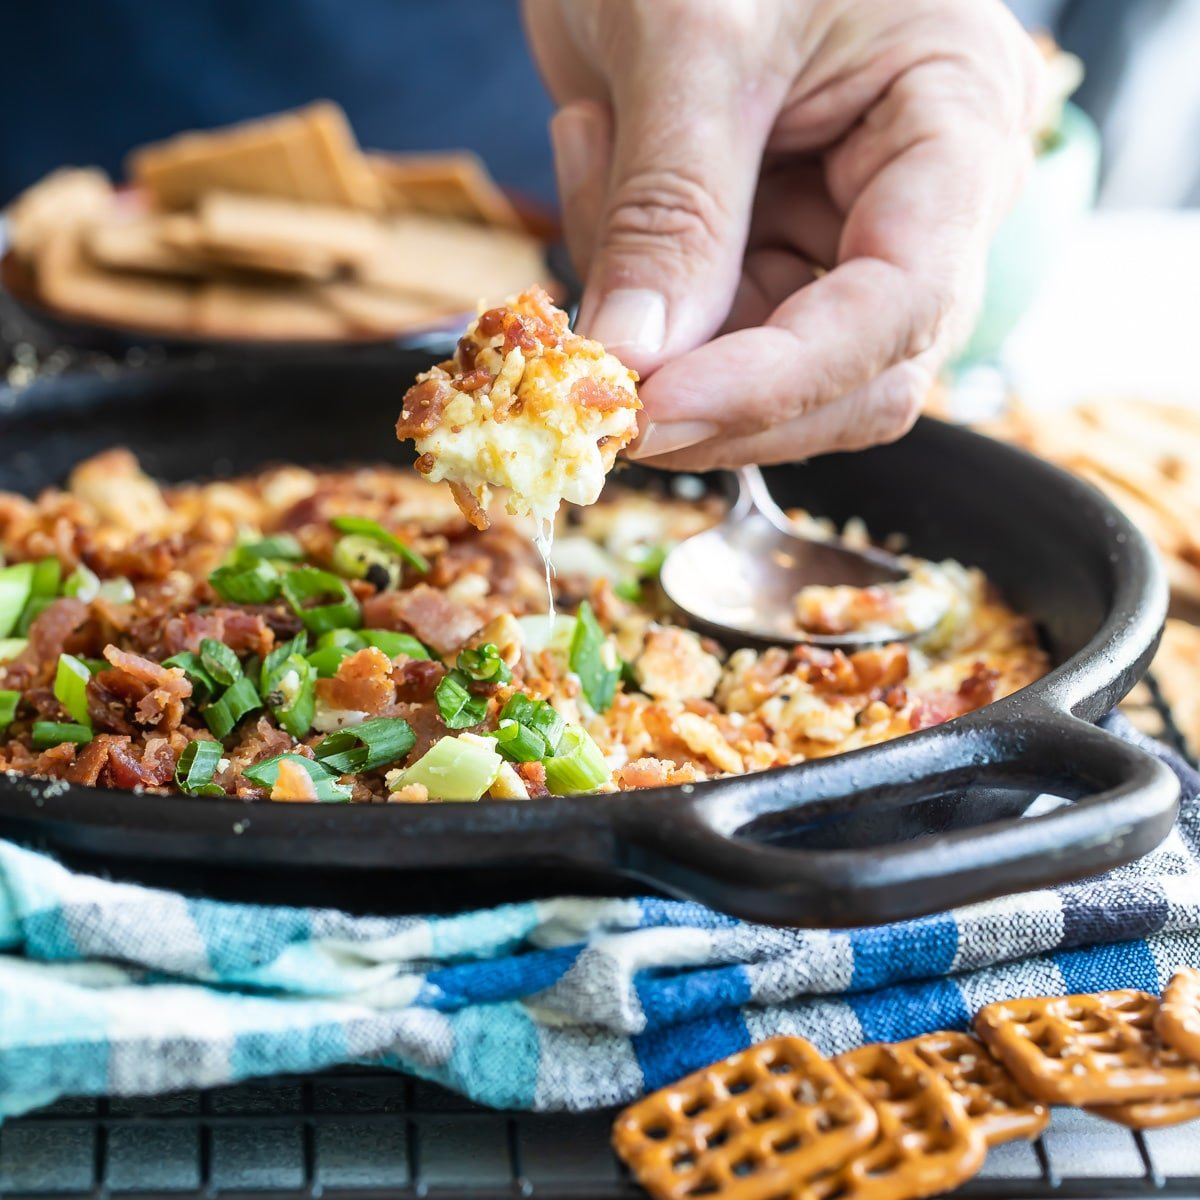 Cheesy bacon dip being scooped out of a cast iron skillet.